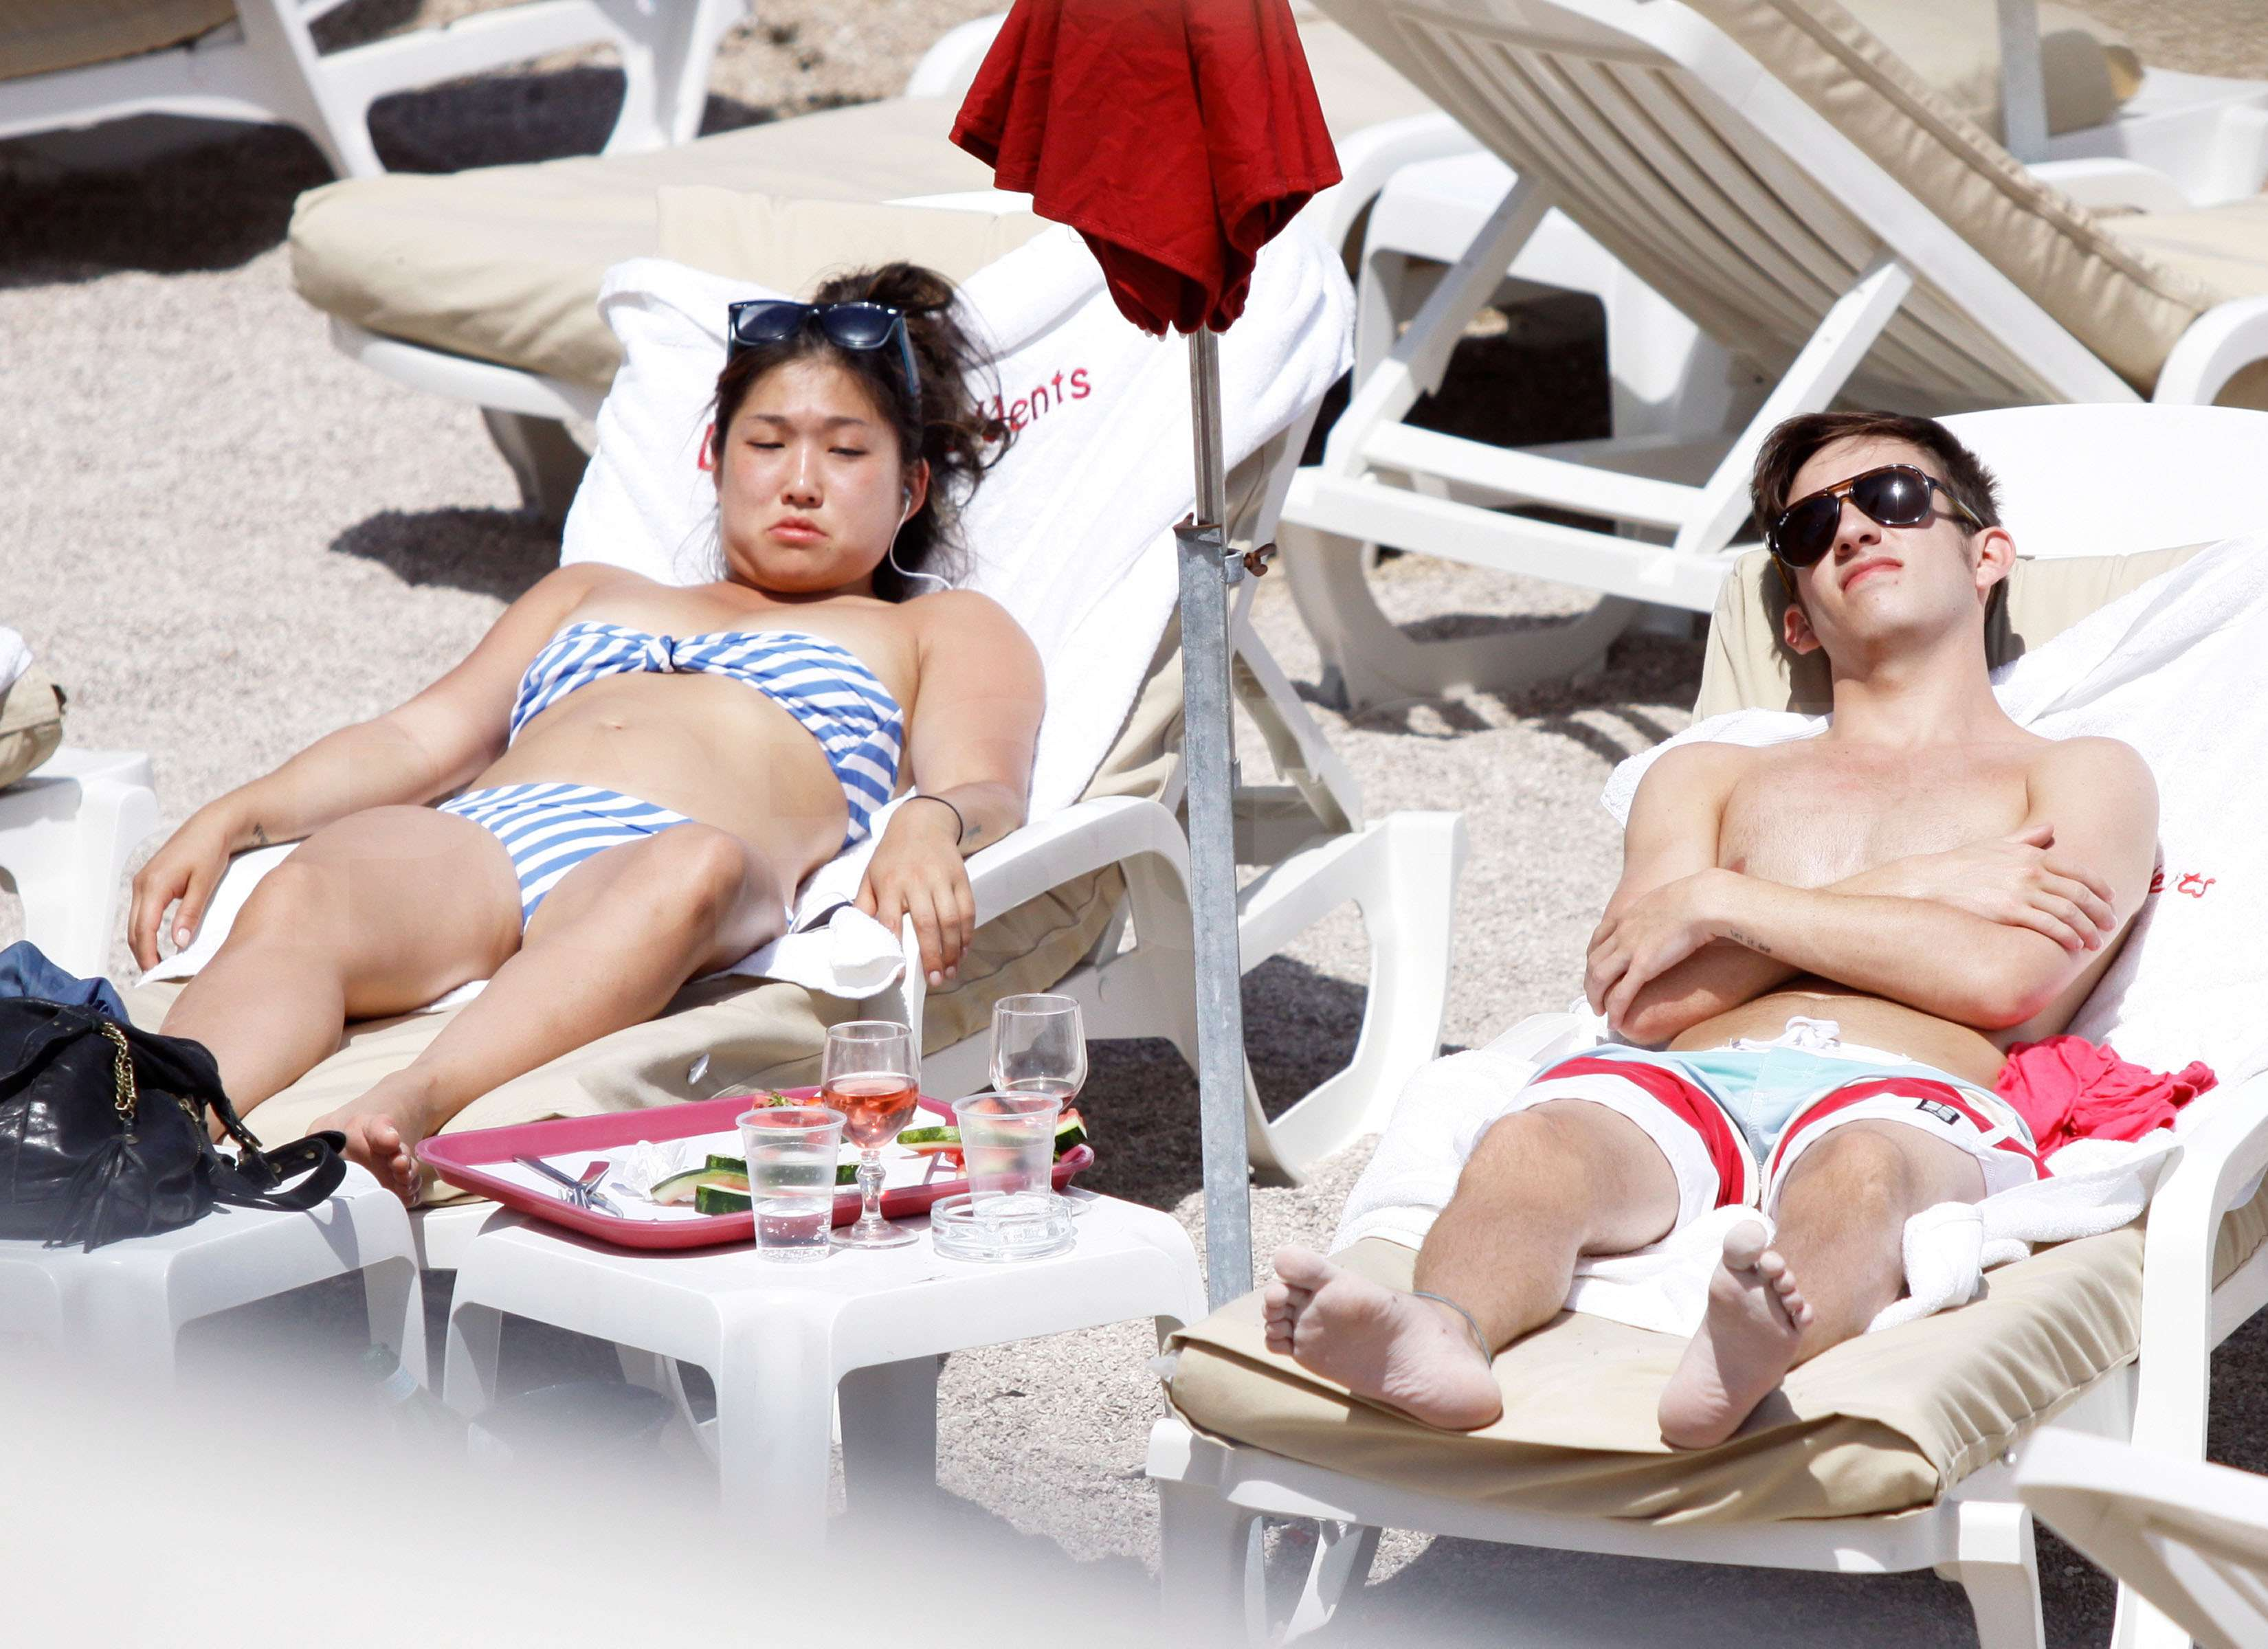 sunning lounge chair pictures glee jenna ushkowitz bikini costar kevin mchale shirtless monaco